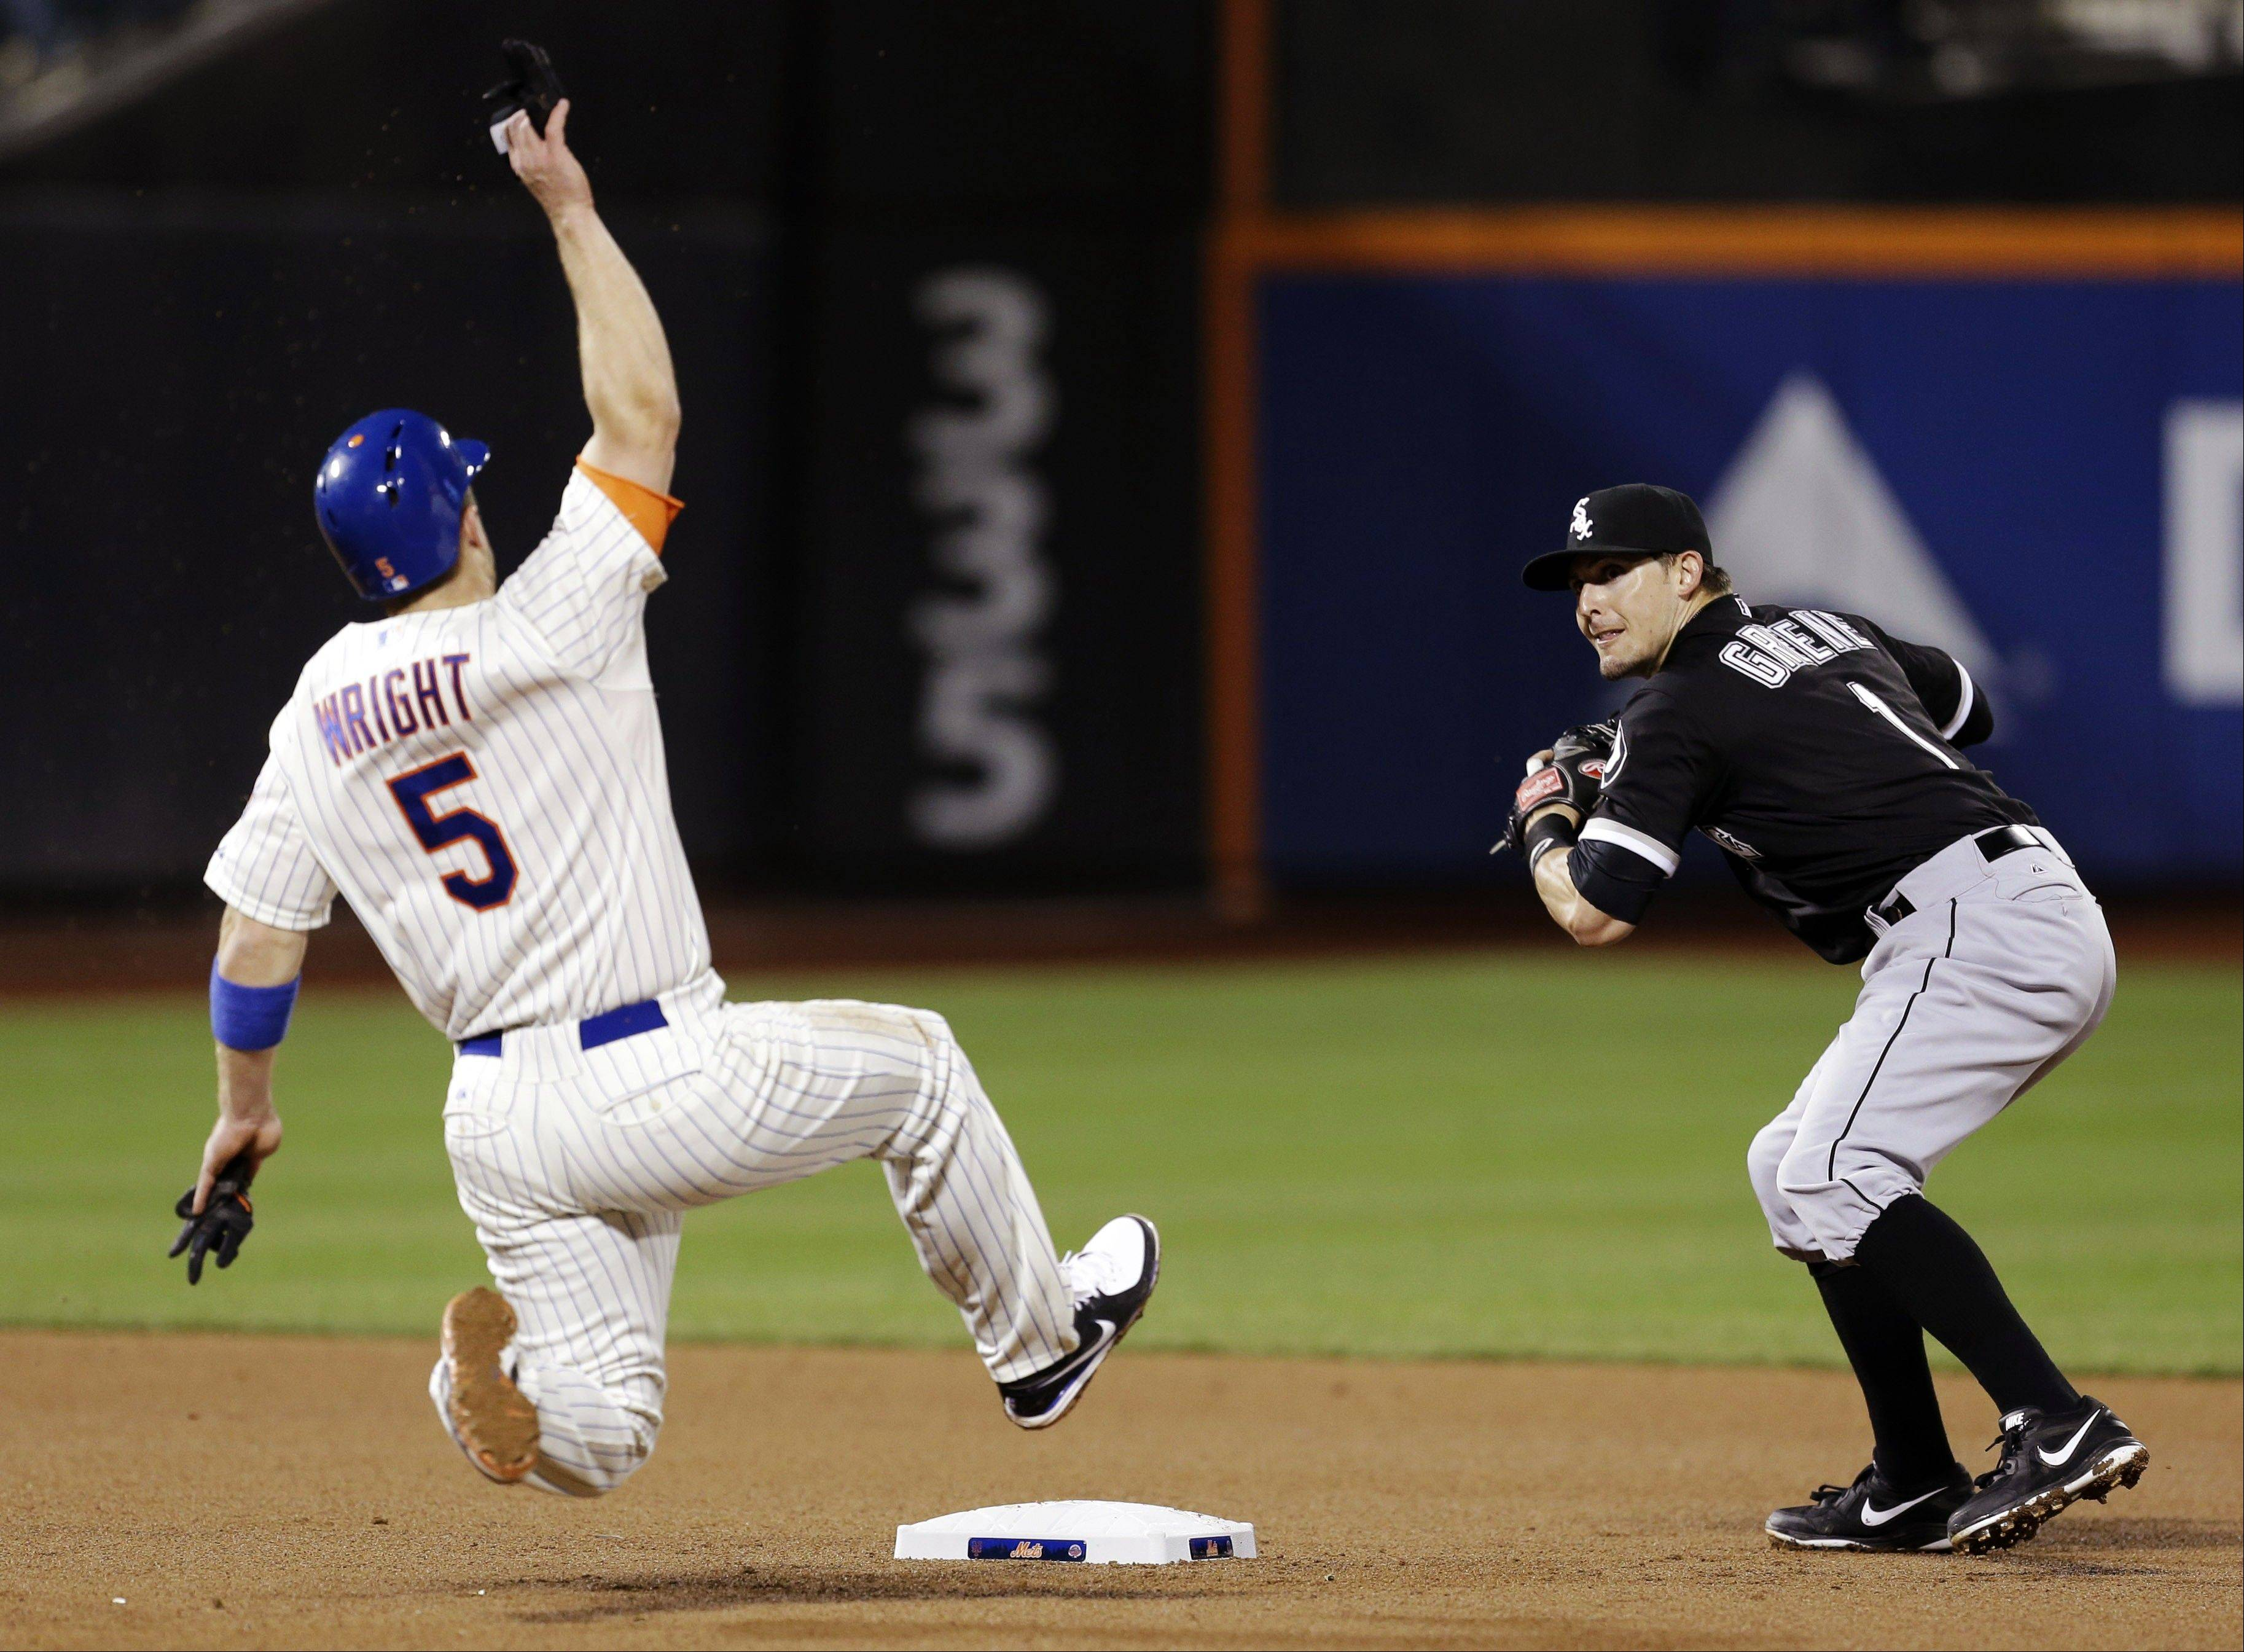 White Sox second baseman Tyler Greene, right, turns a double play as New York Mets' David Wright slides into second base during the fourth inning of a baseball game at Citi Field, Wednesday, May 8, 2013, in New York.